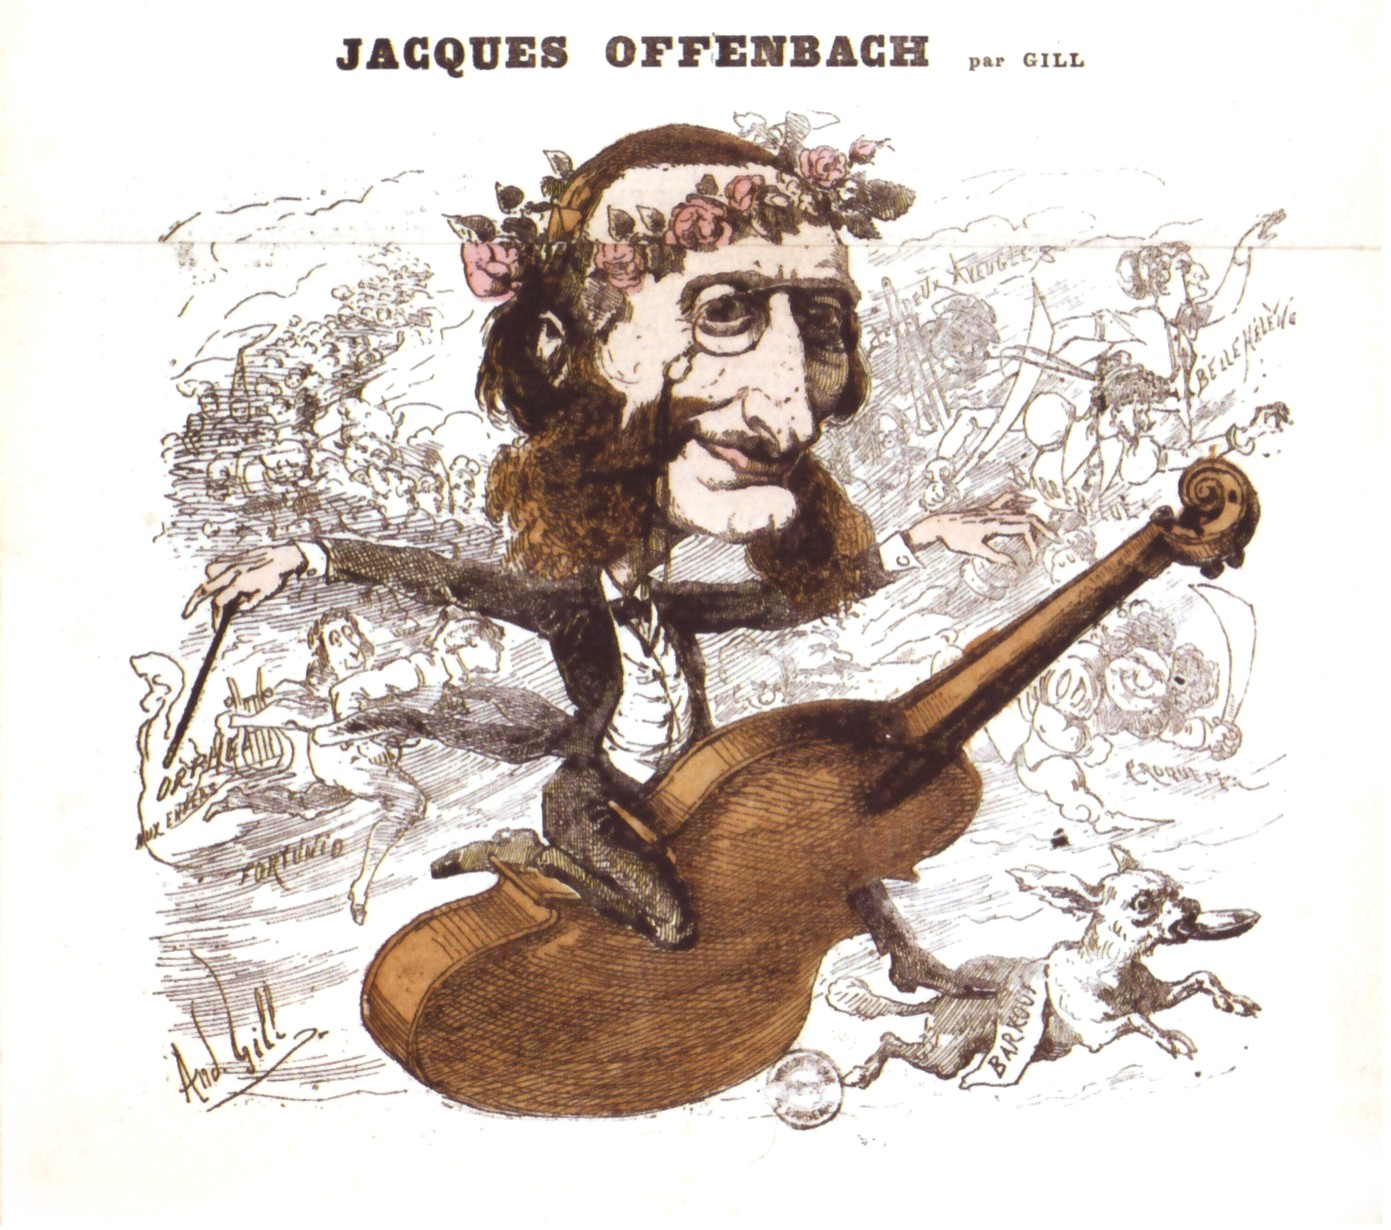 Jacques Offenbach riding his success, a caricature from a Paris newspaper.